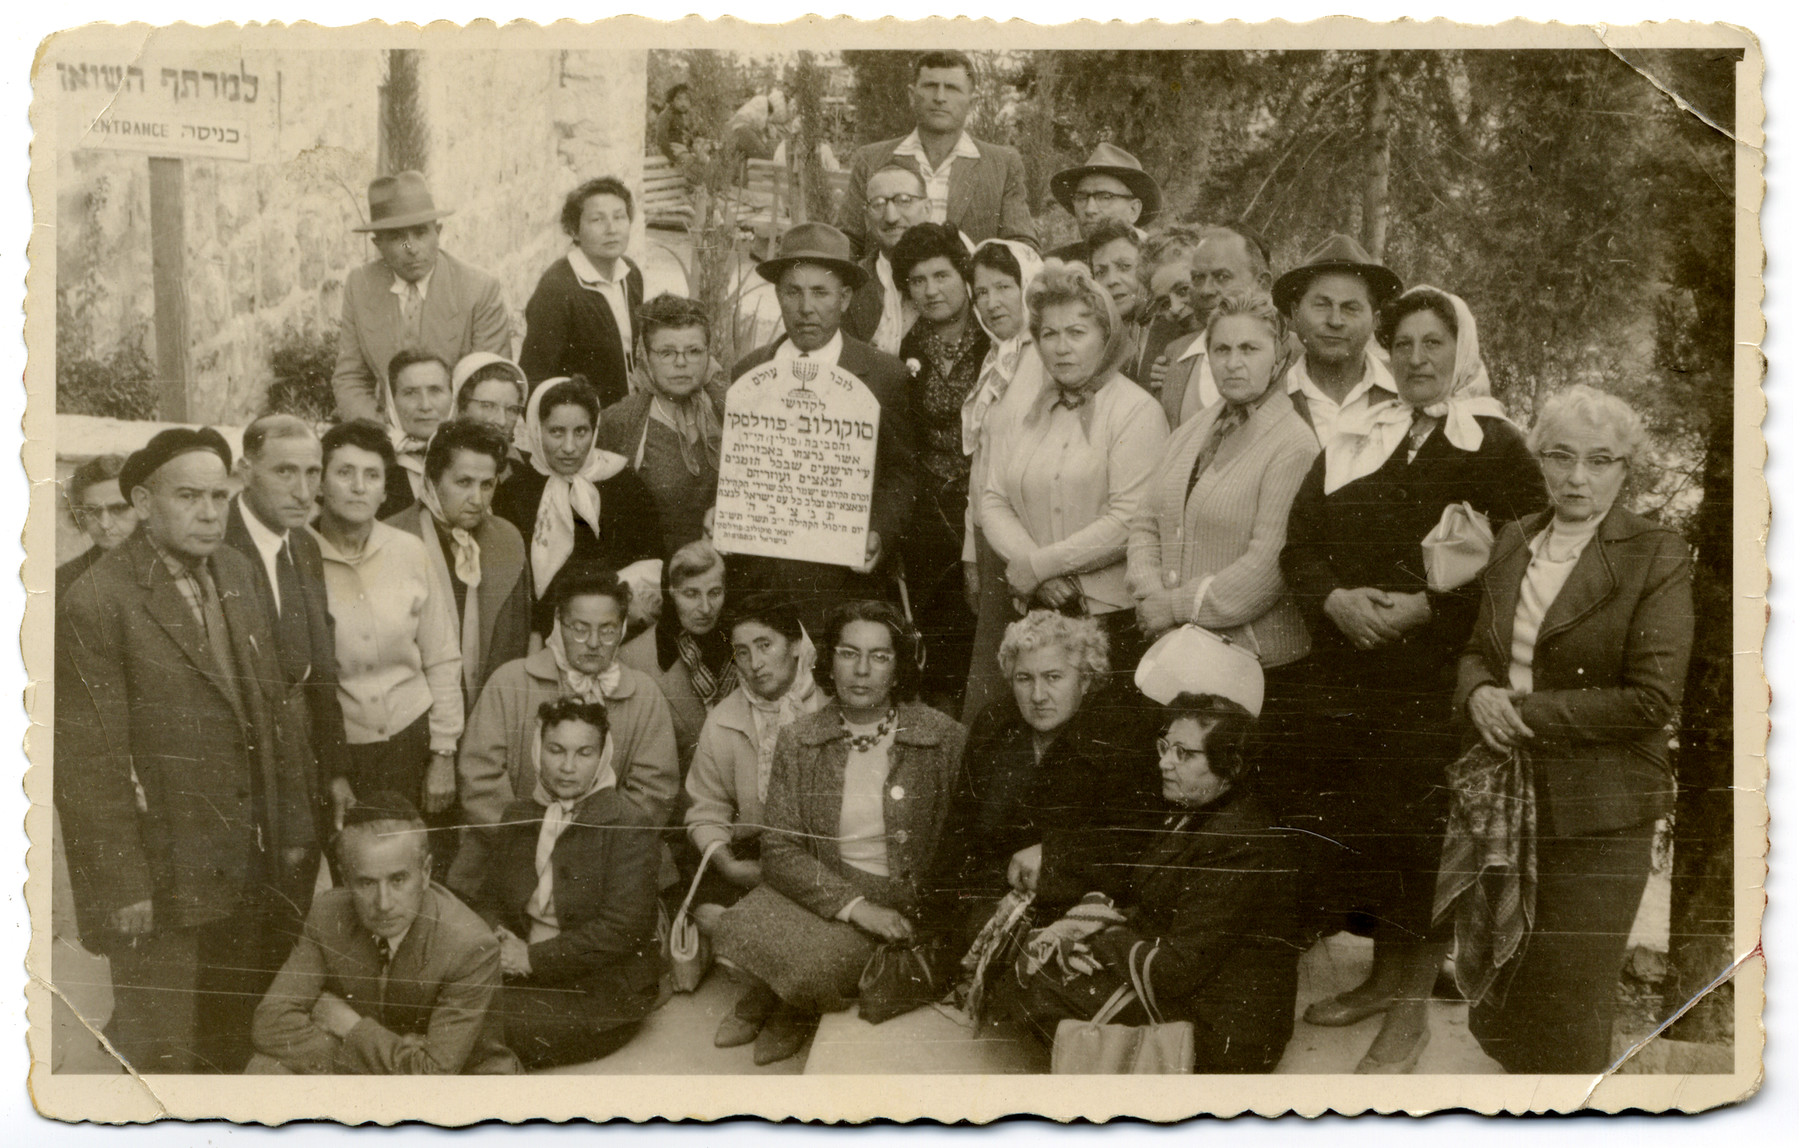 Survivors of Sokolow Podlaski pose around a makeshift tombstone during a memorial service for the Holocaust victims of the town.  Shoshana Feldman (sister of Mendel) is among those pictured.  She immigrated to Palestine before the war is part of the group.  Also pictured is Srul Szczerb, seen  holding the plaque. His sister, Malka  (Szczerb) Goldschmidt  is standing to his right (wearing a scarf and glasses). The two survived the war in Russia and then immigrated to Israel afterwards.  Their younger sister, Cywia (Szczerb) Elster, had been hiding in the farms around the town of Sokolow and was turned in to the Germans by a farmer named Oziemblo six months before the end of the war. The Germans brought her into the town and then shot her. Cywia's children,  Irene  and Aaron Elster survived.